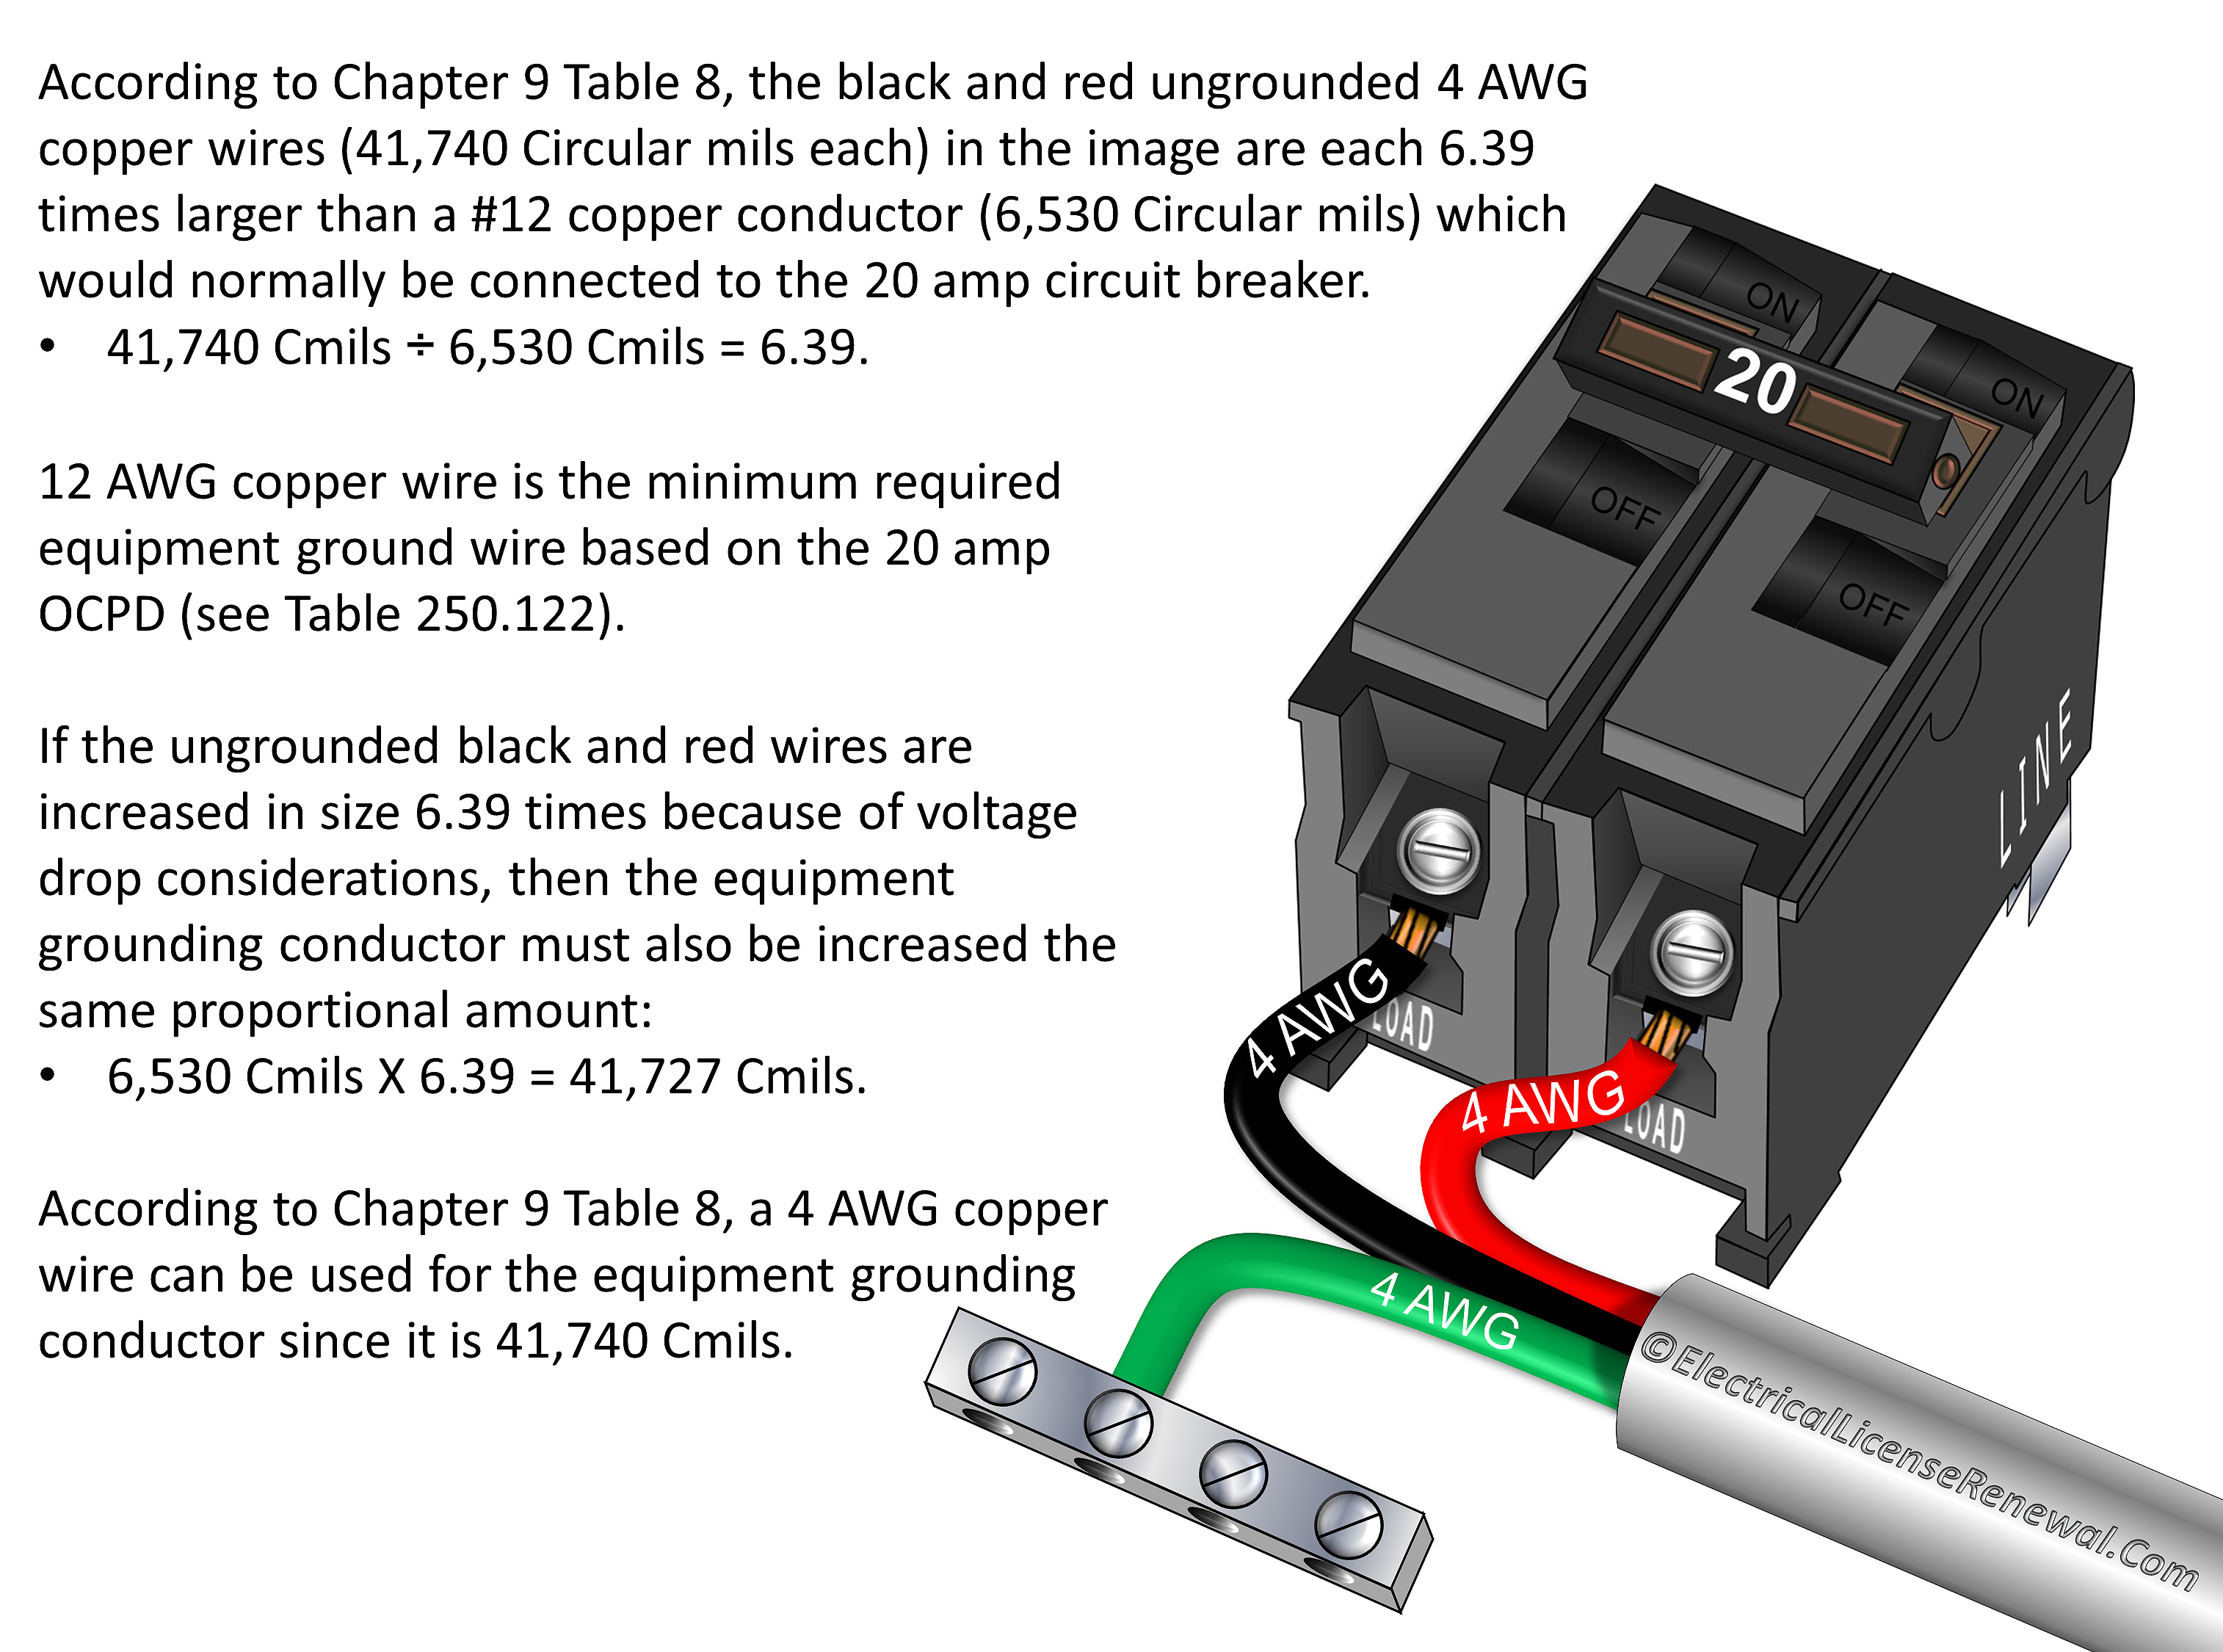 250.122(B) Size of Equipment Grounding Conductors. Increased in Size.